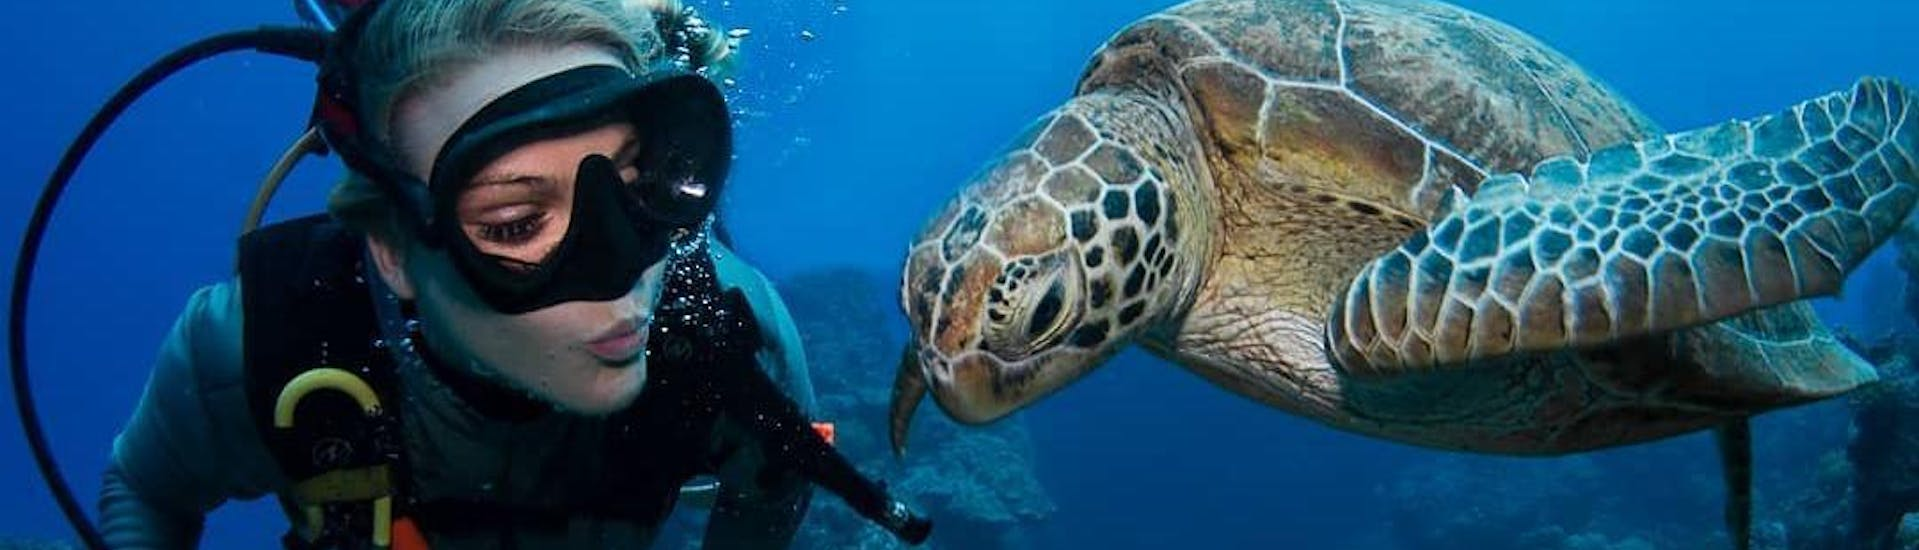 A woman is admiring a curious turtle during the Guided Dives on the Great Barrier Reef for Certified Divers organised by Passions of Paradise.